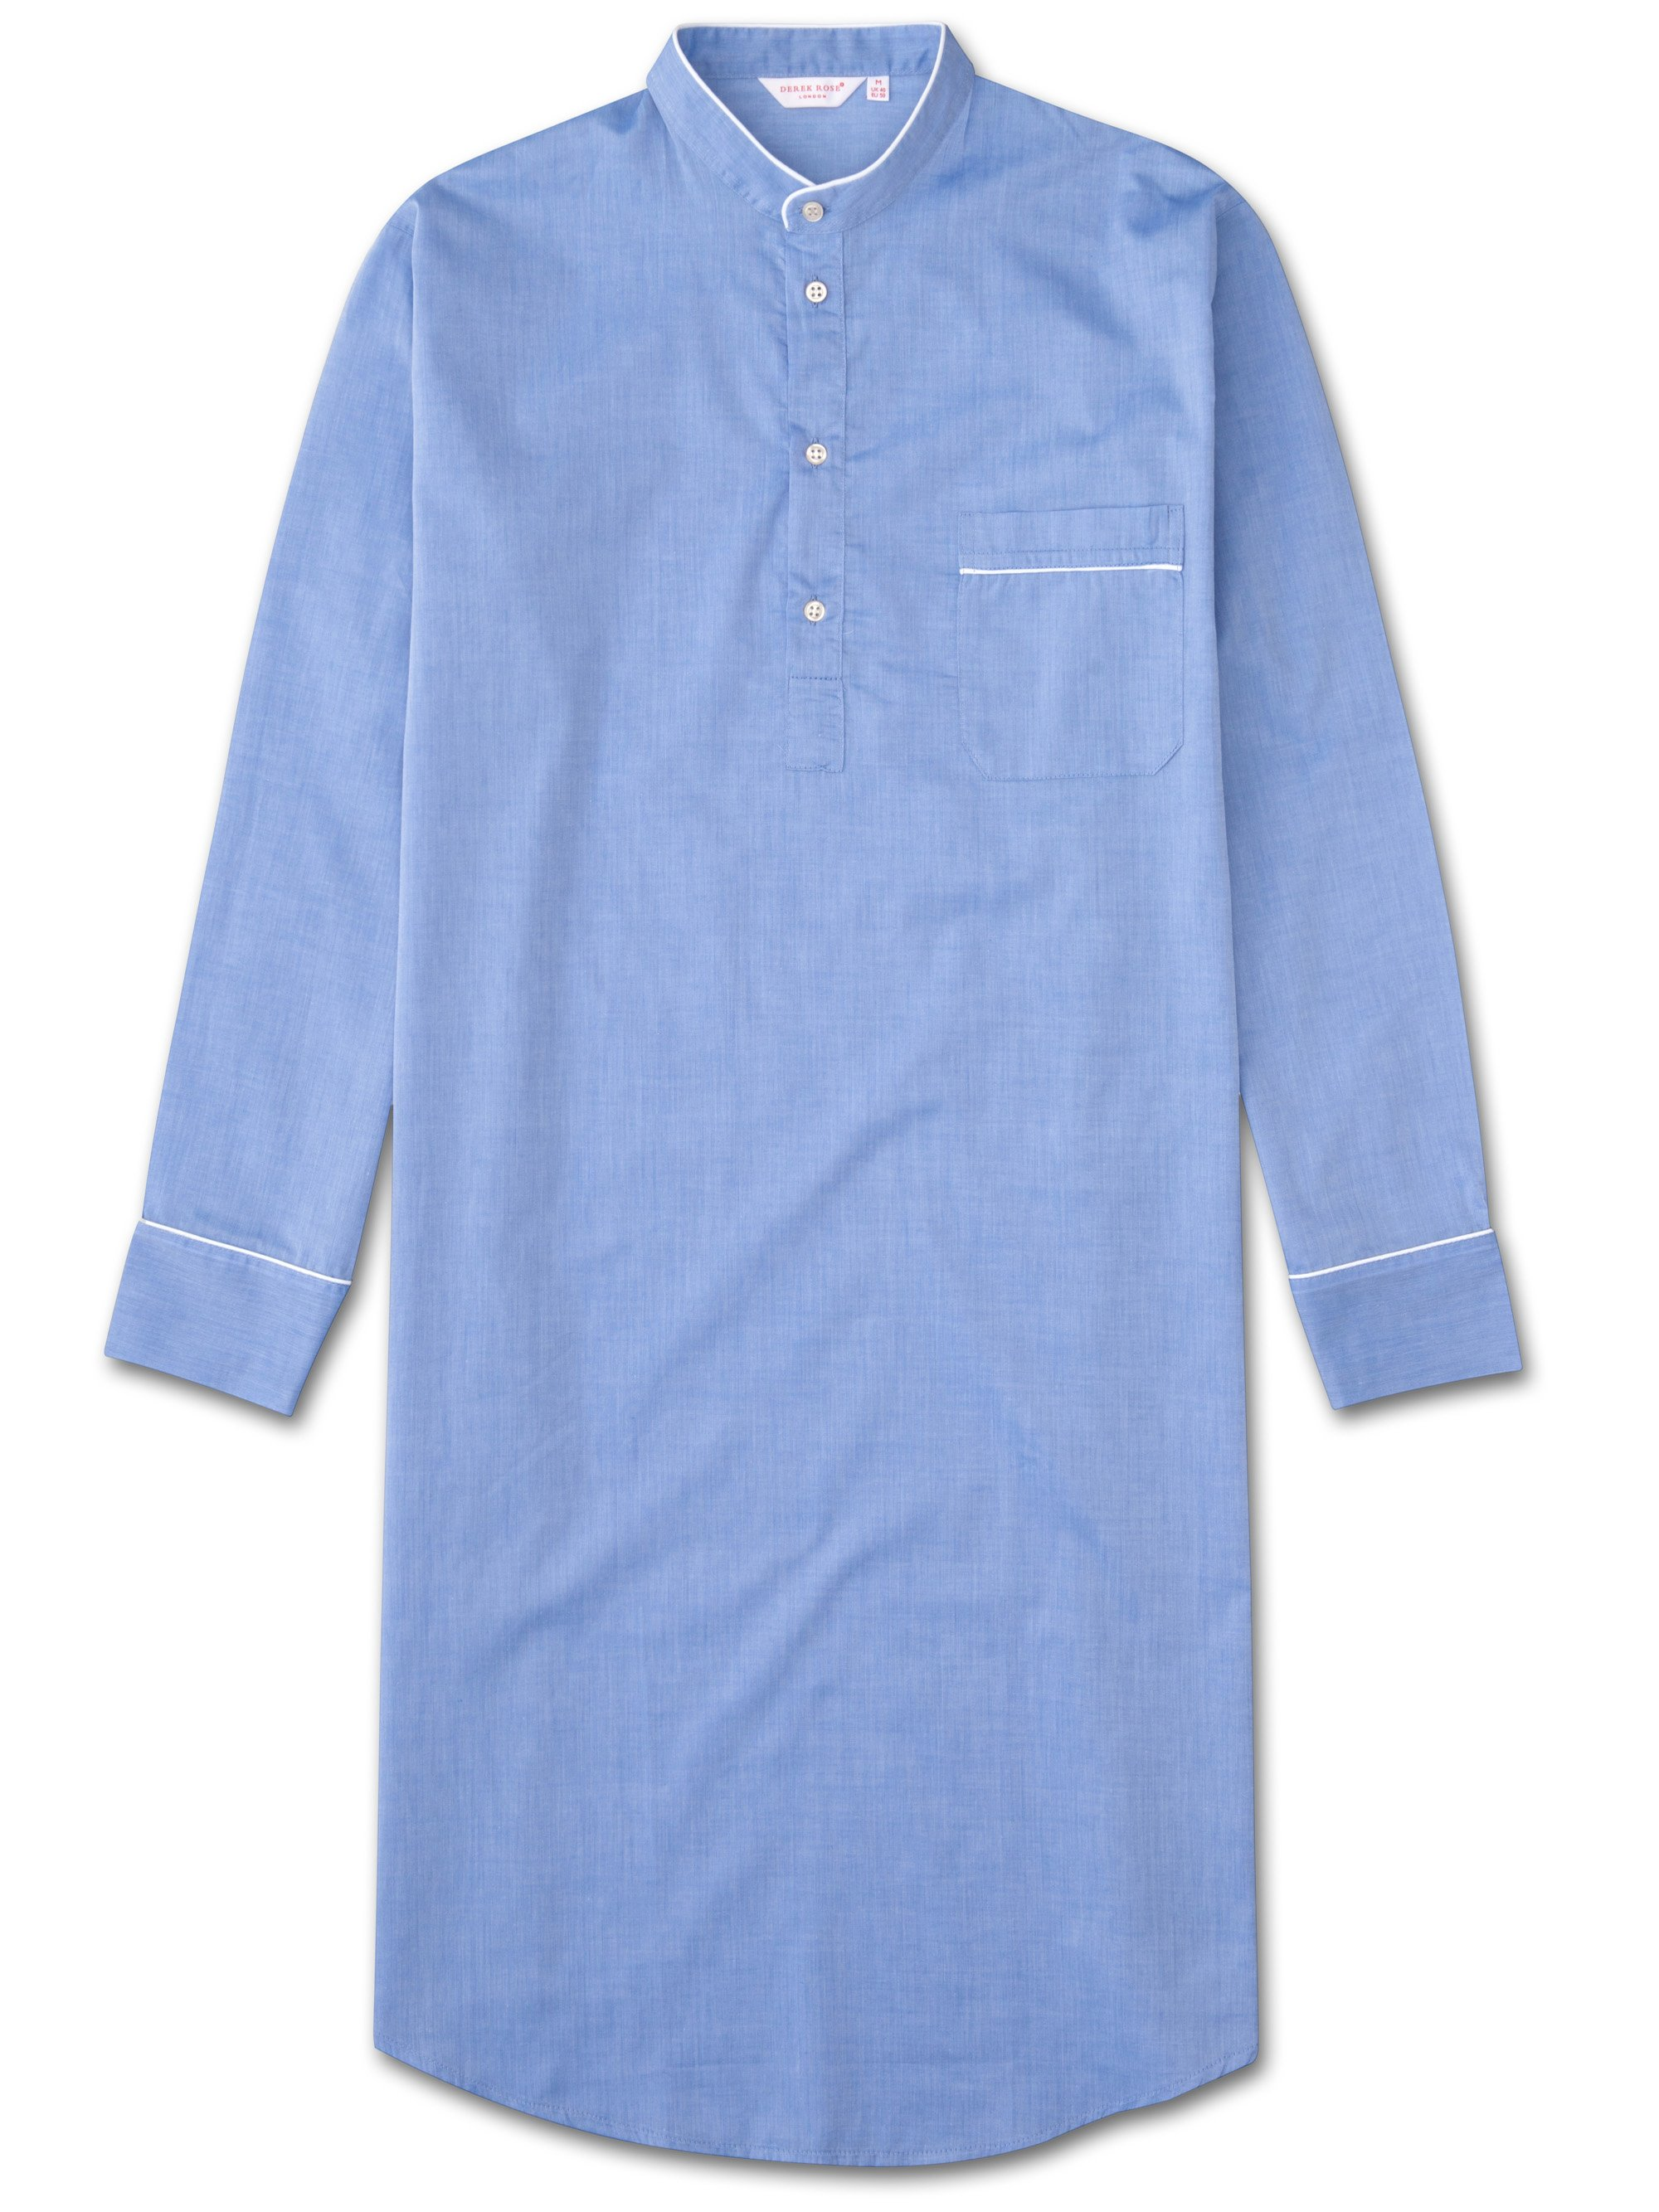 Men's Pullover Nightshirt Amalfi Cotton Batiste Blue